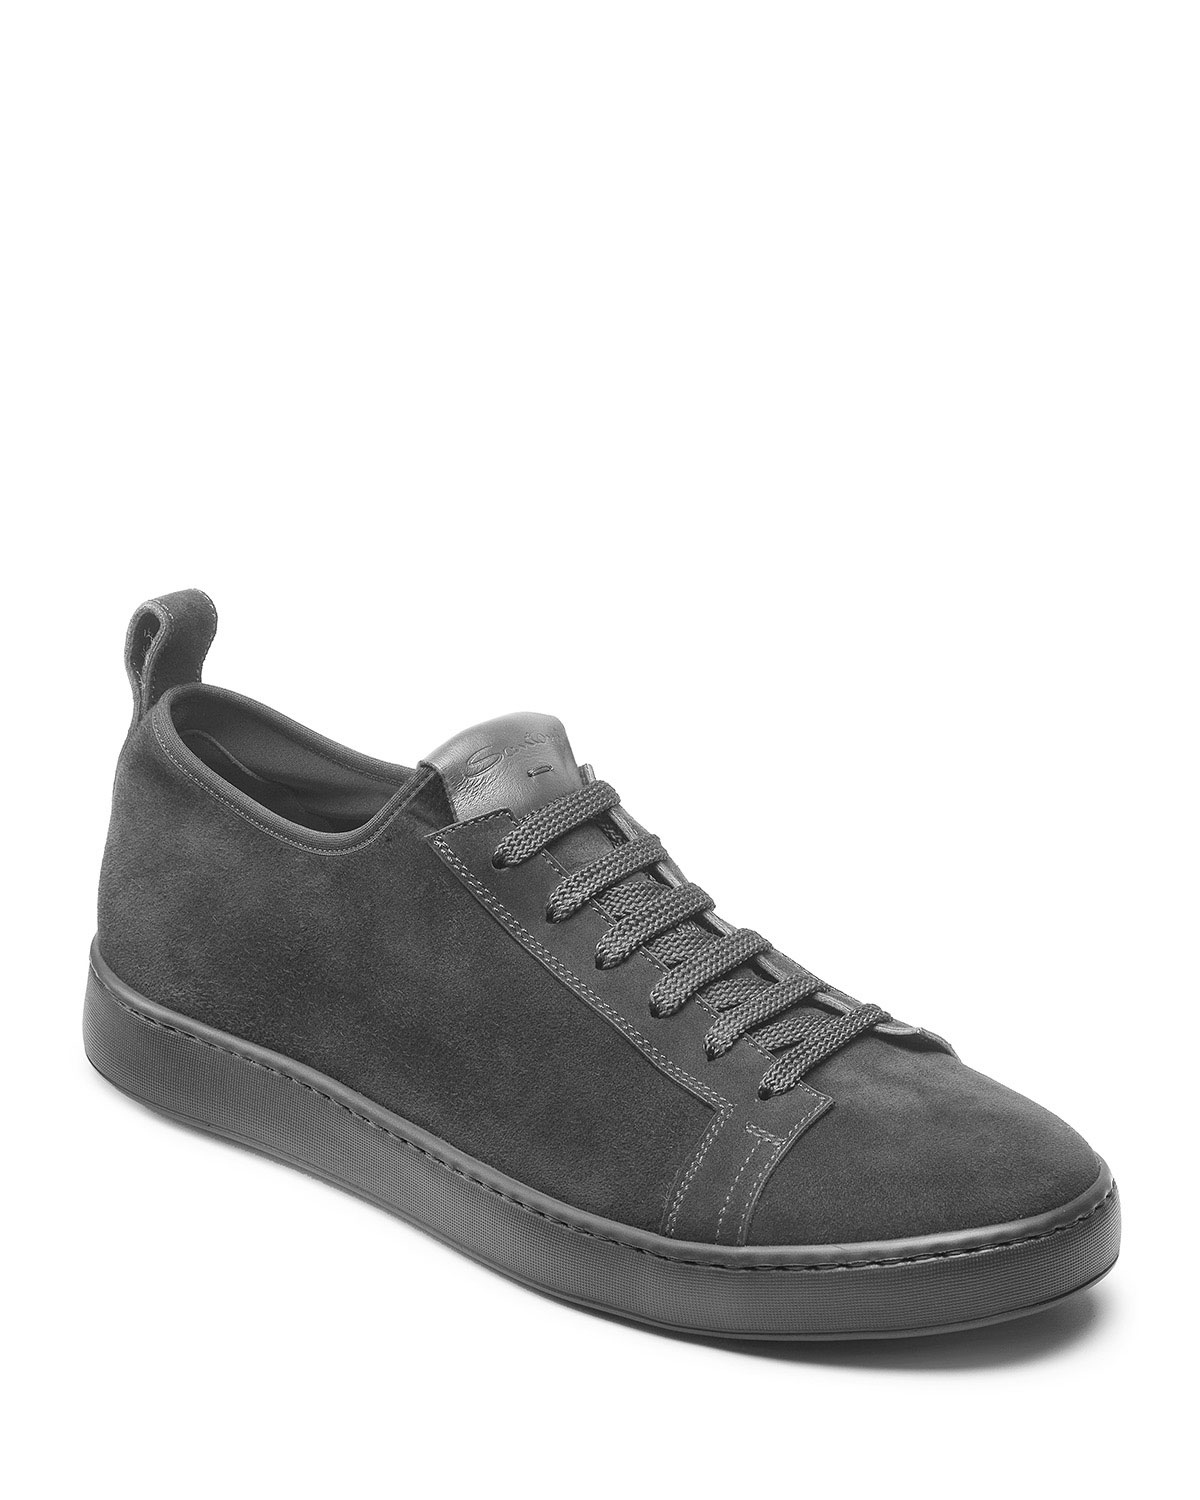 Men's Clean Iconic Suede Slip-On Stretch Sneakers